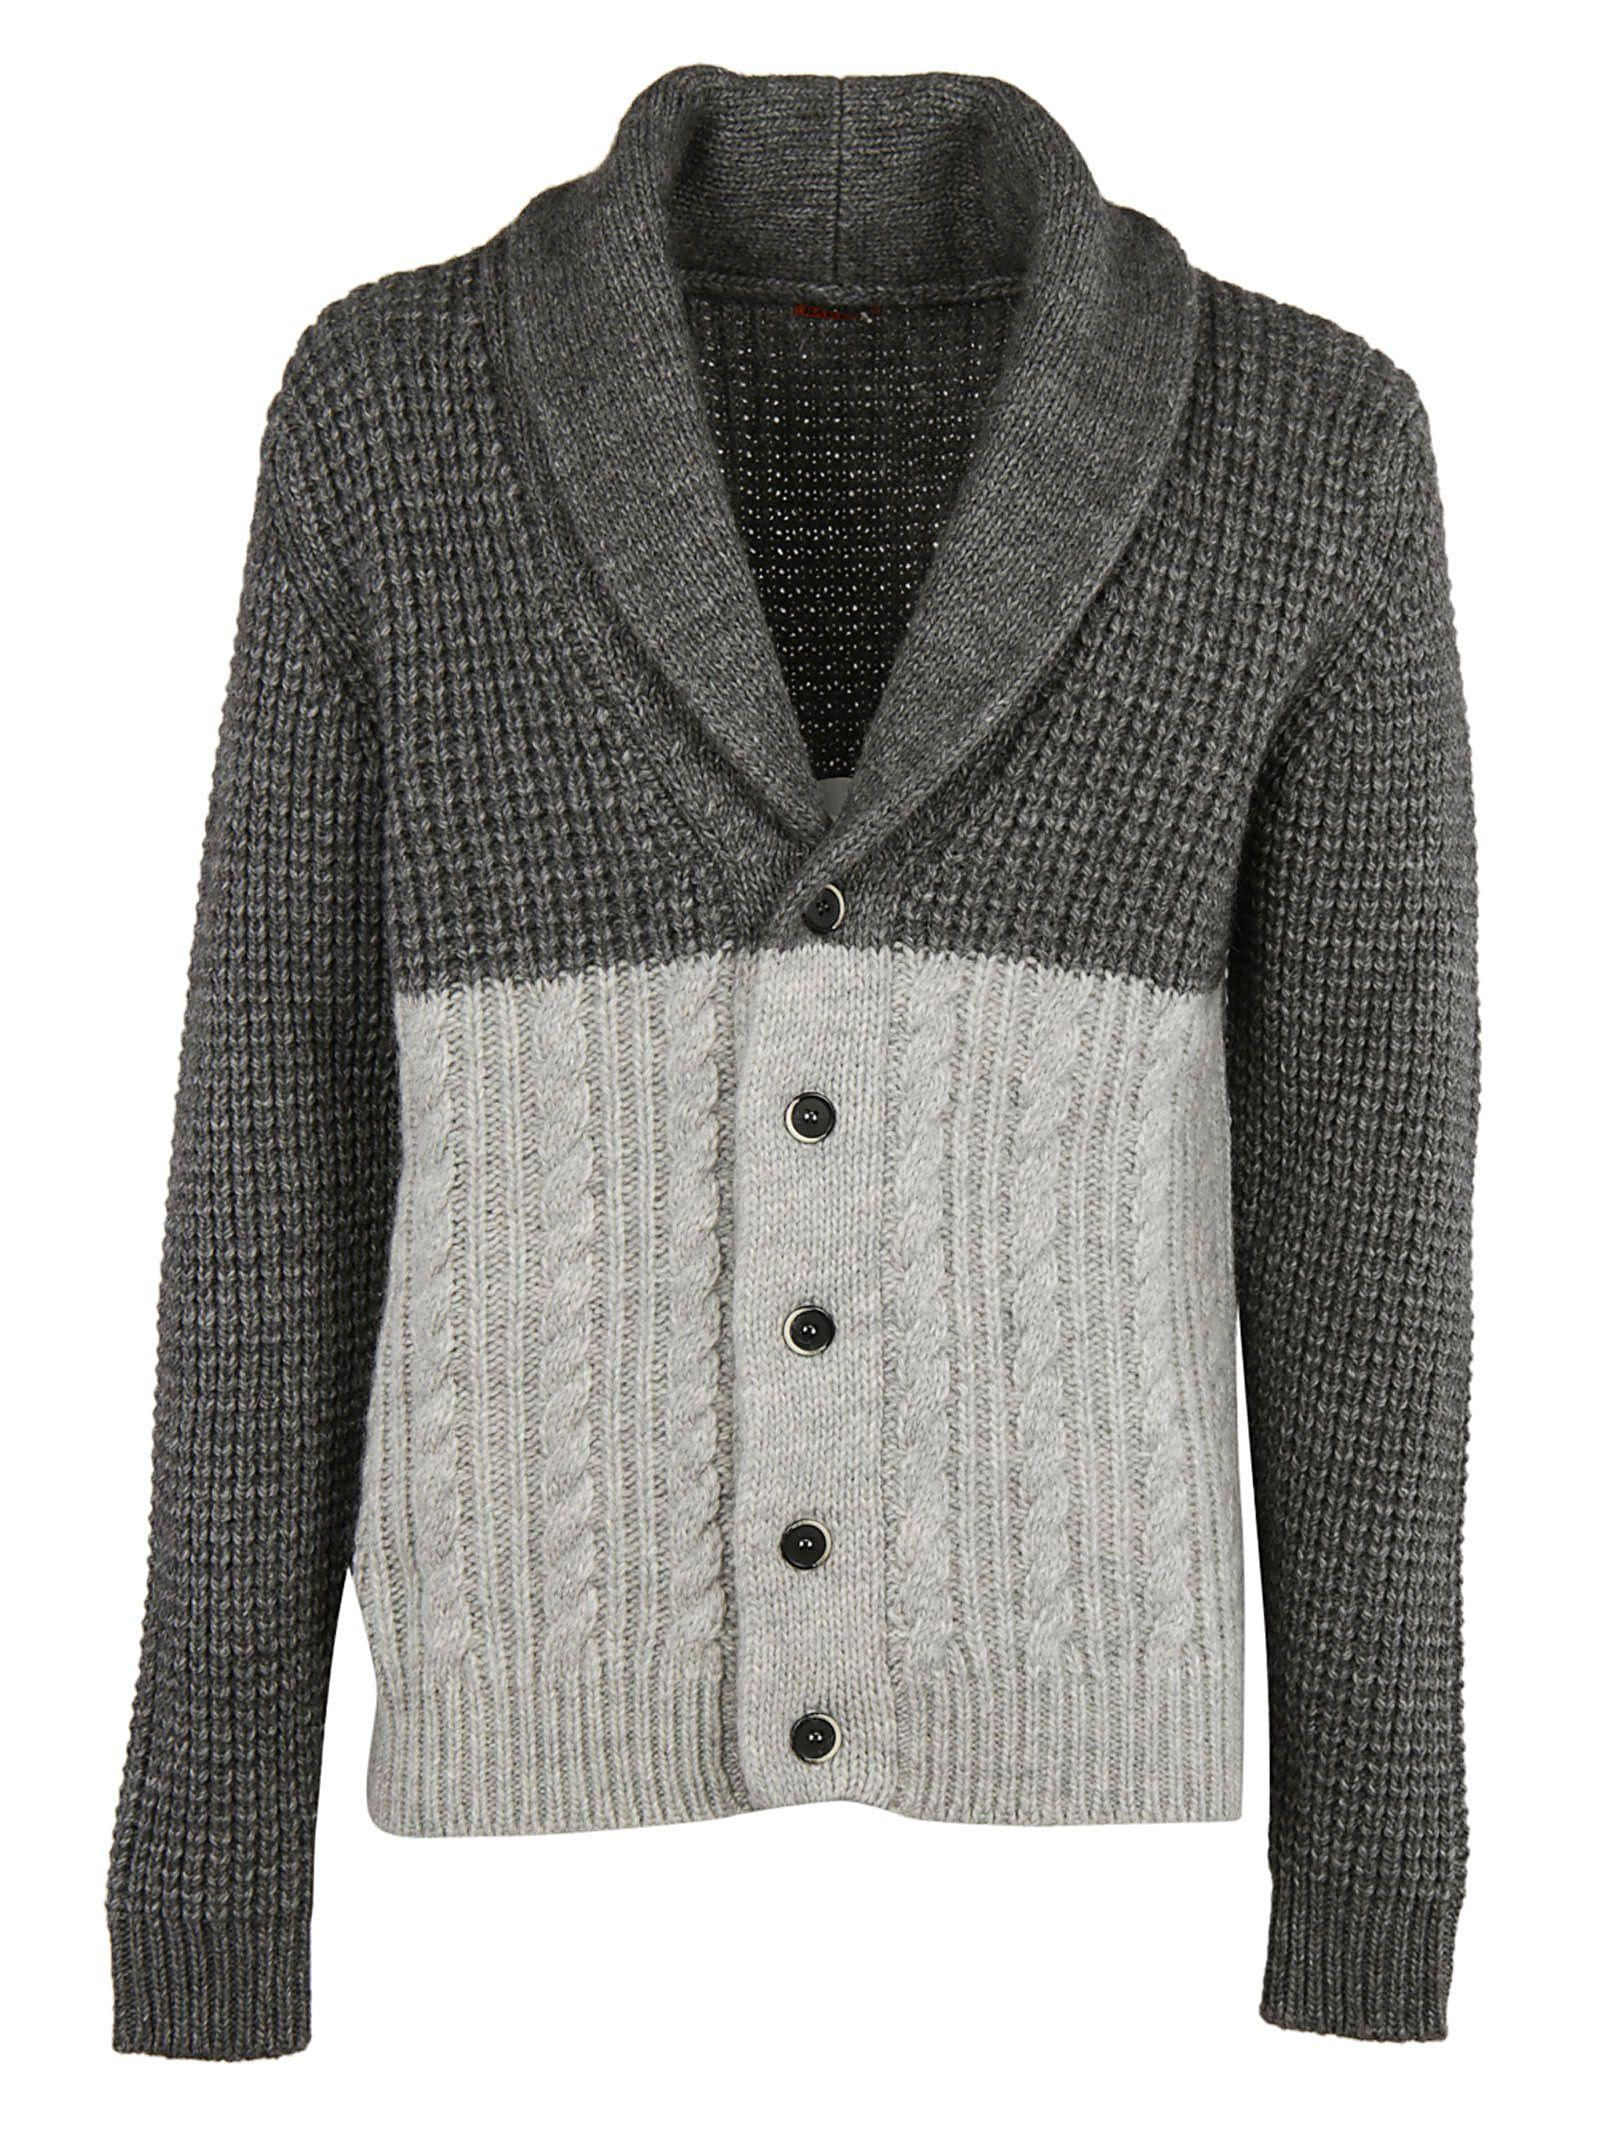 Barena Venezia Shawl Lapel Tonal Cardigan In Grey